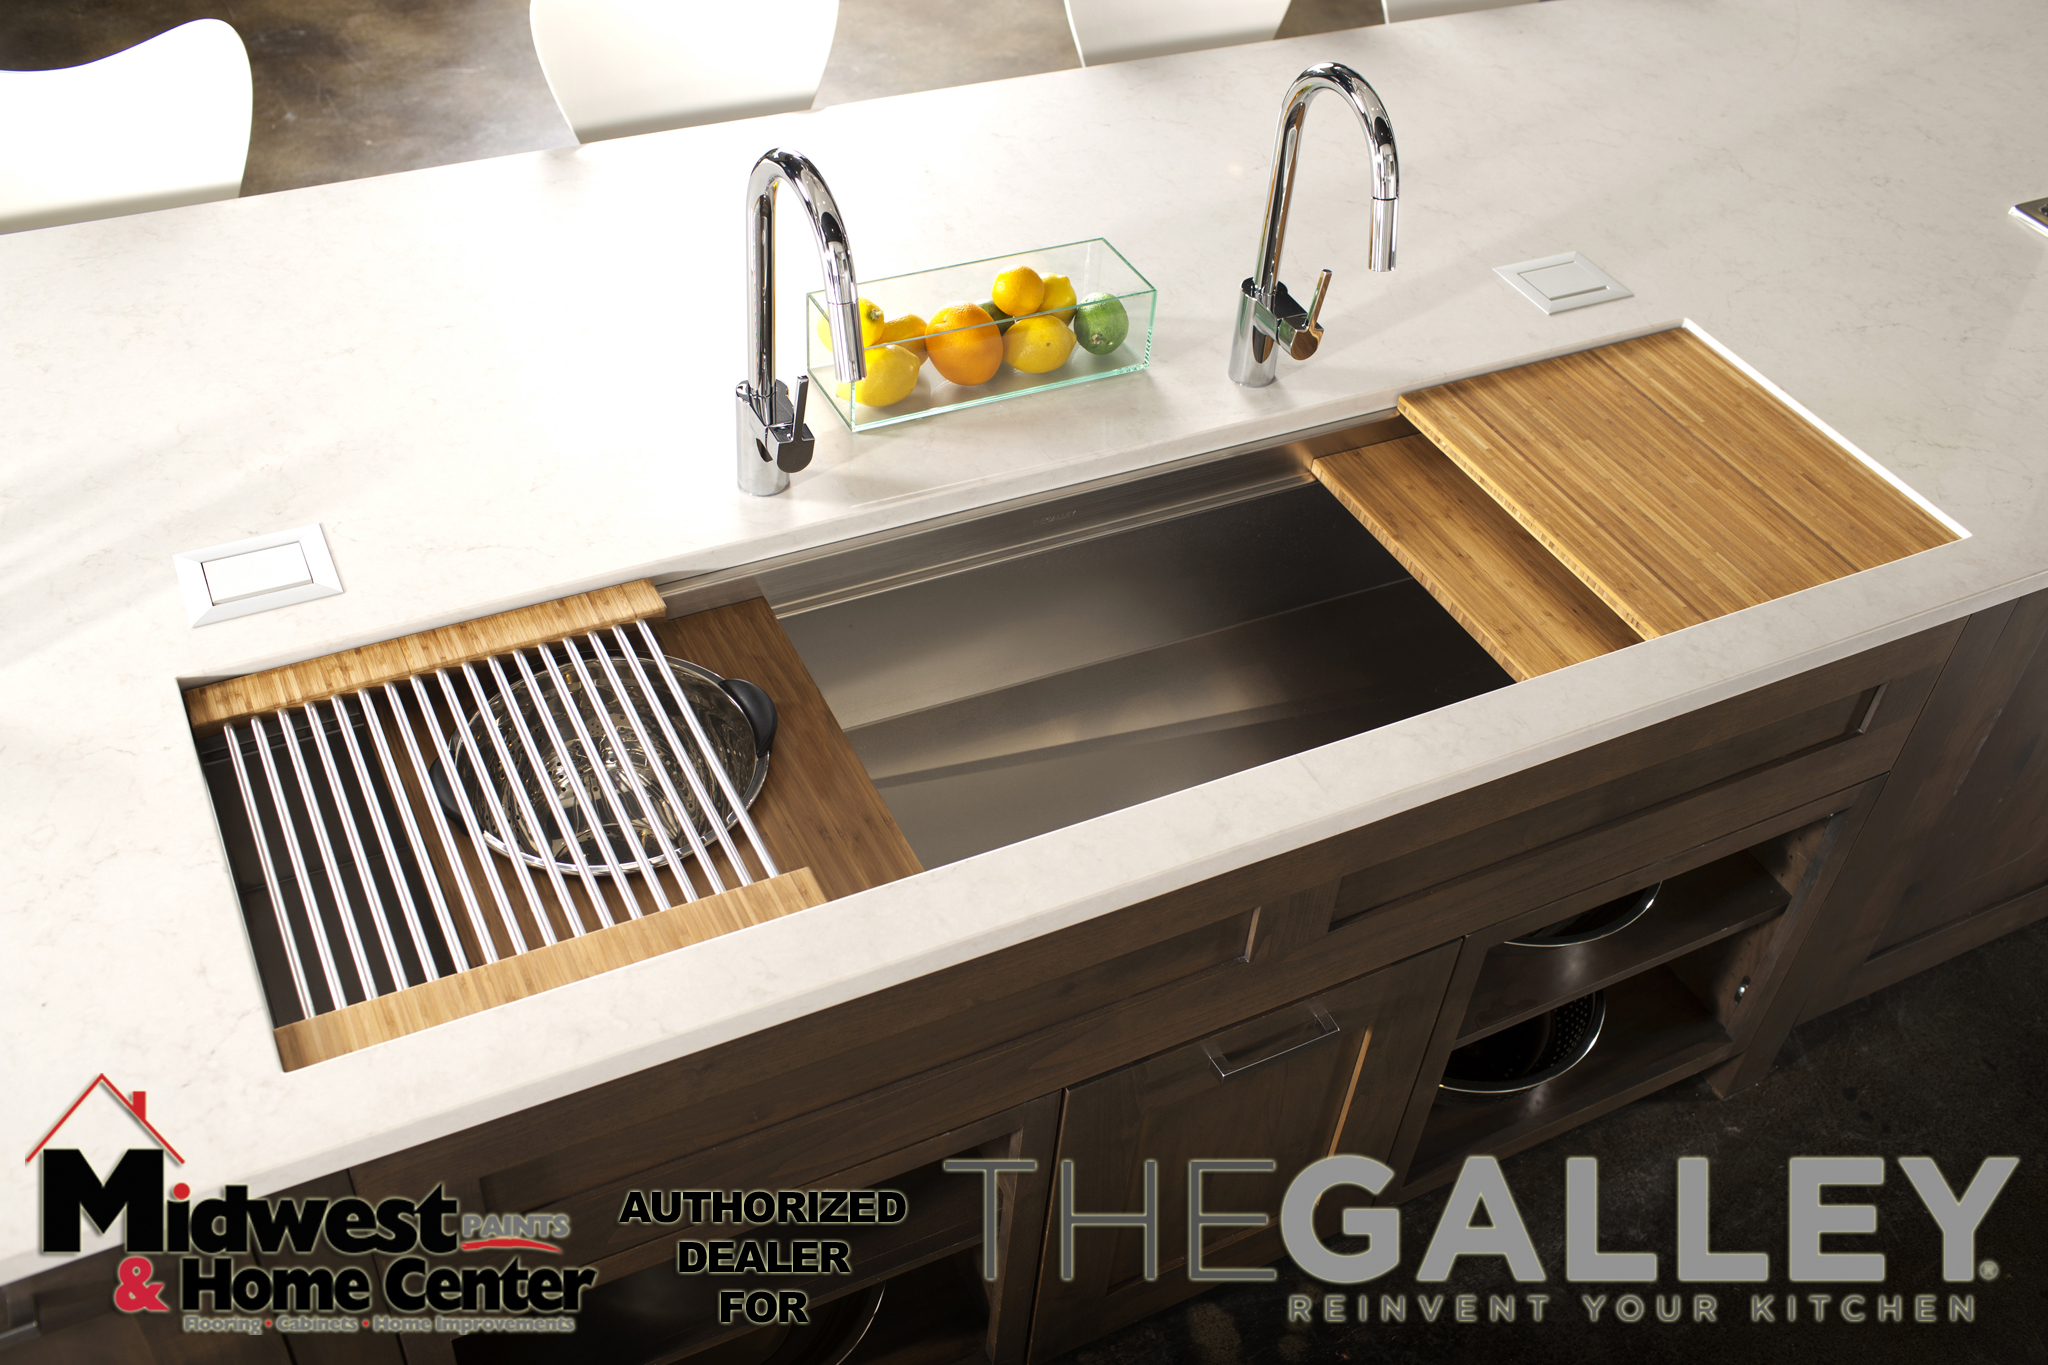 9/25/14 1:39:42 PM -- Kitchen interiors of The Galley sink at Metro Appliance for Kitchen Ideas/The Galley  Photo by Shane Bevel